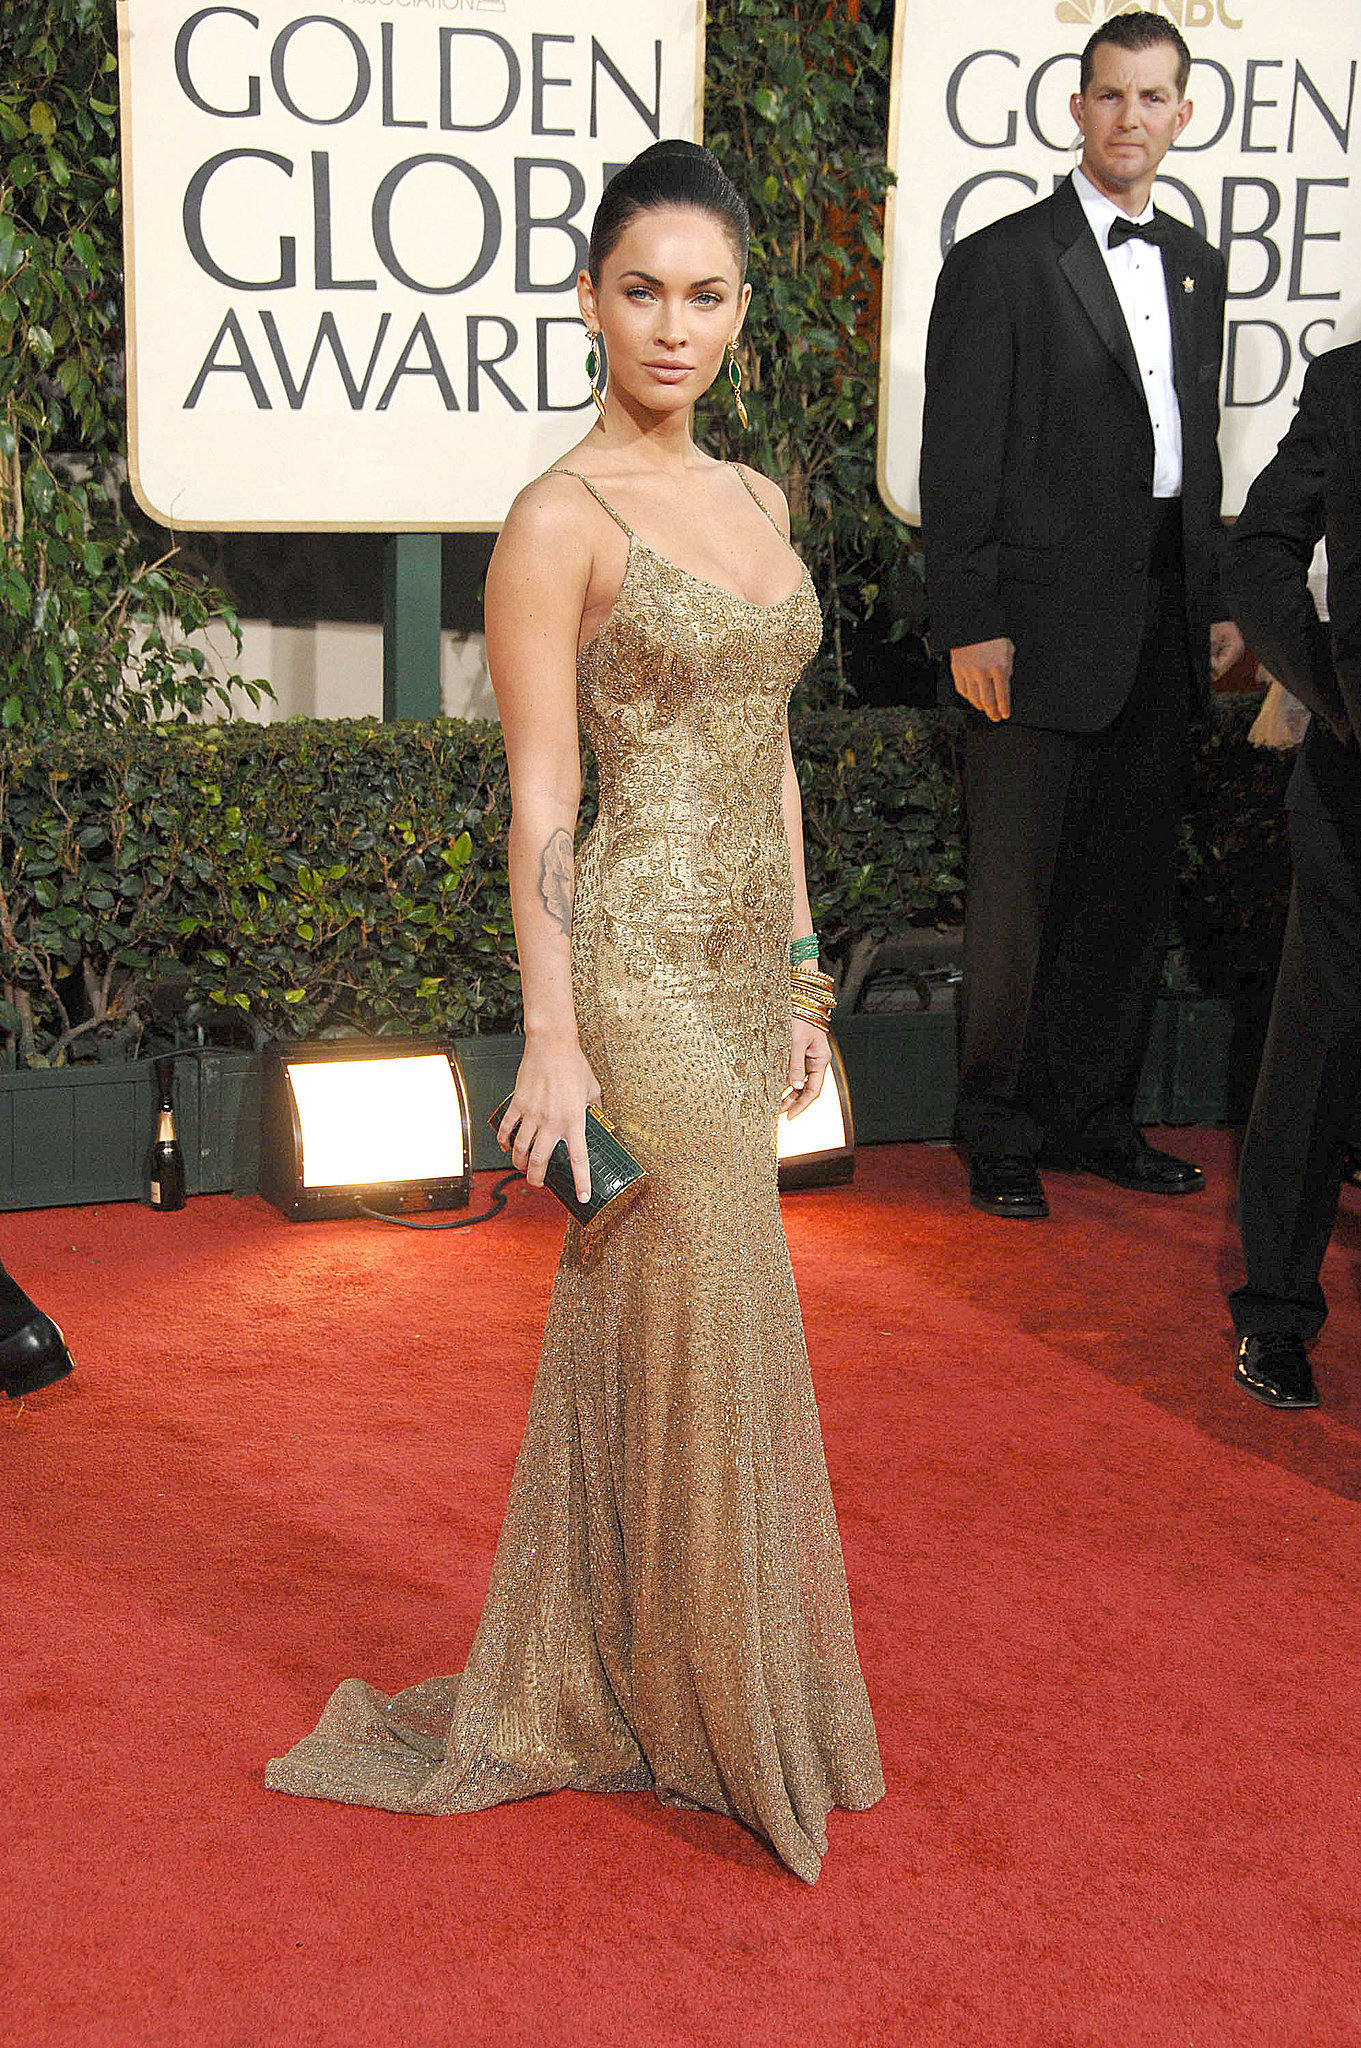 Megan Fox in Ralph Lauren at the 2009 Golden Globes